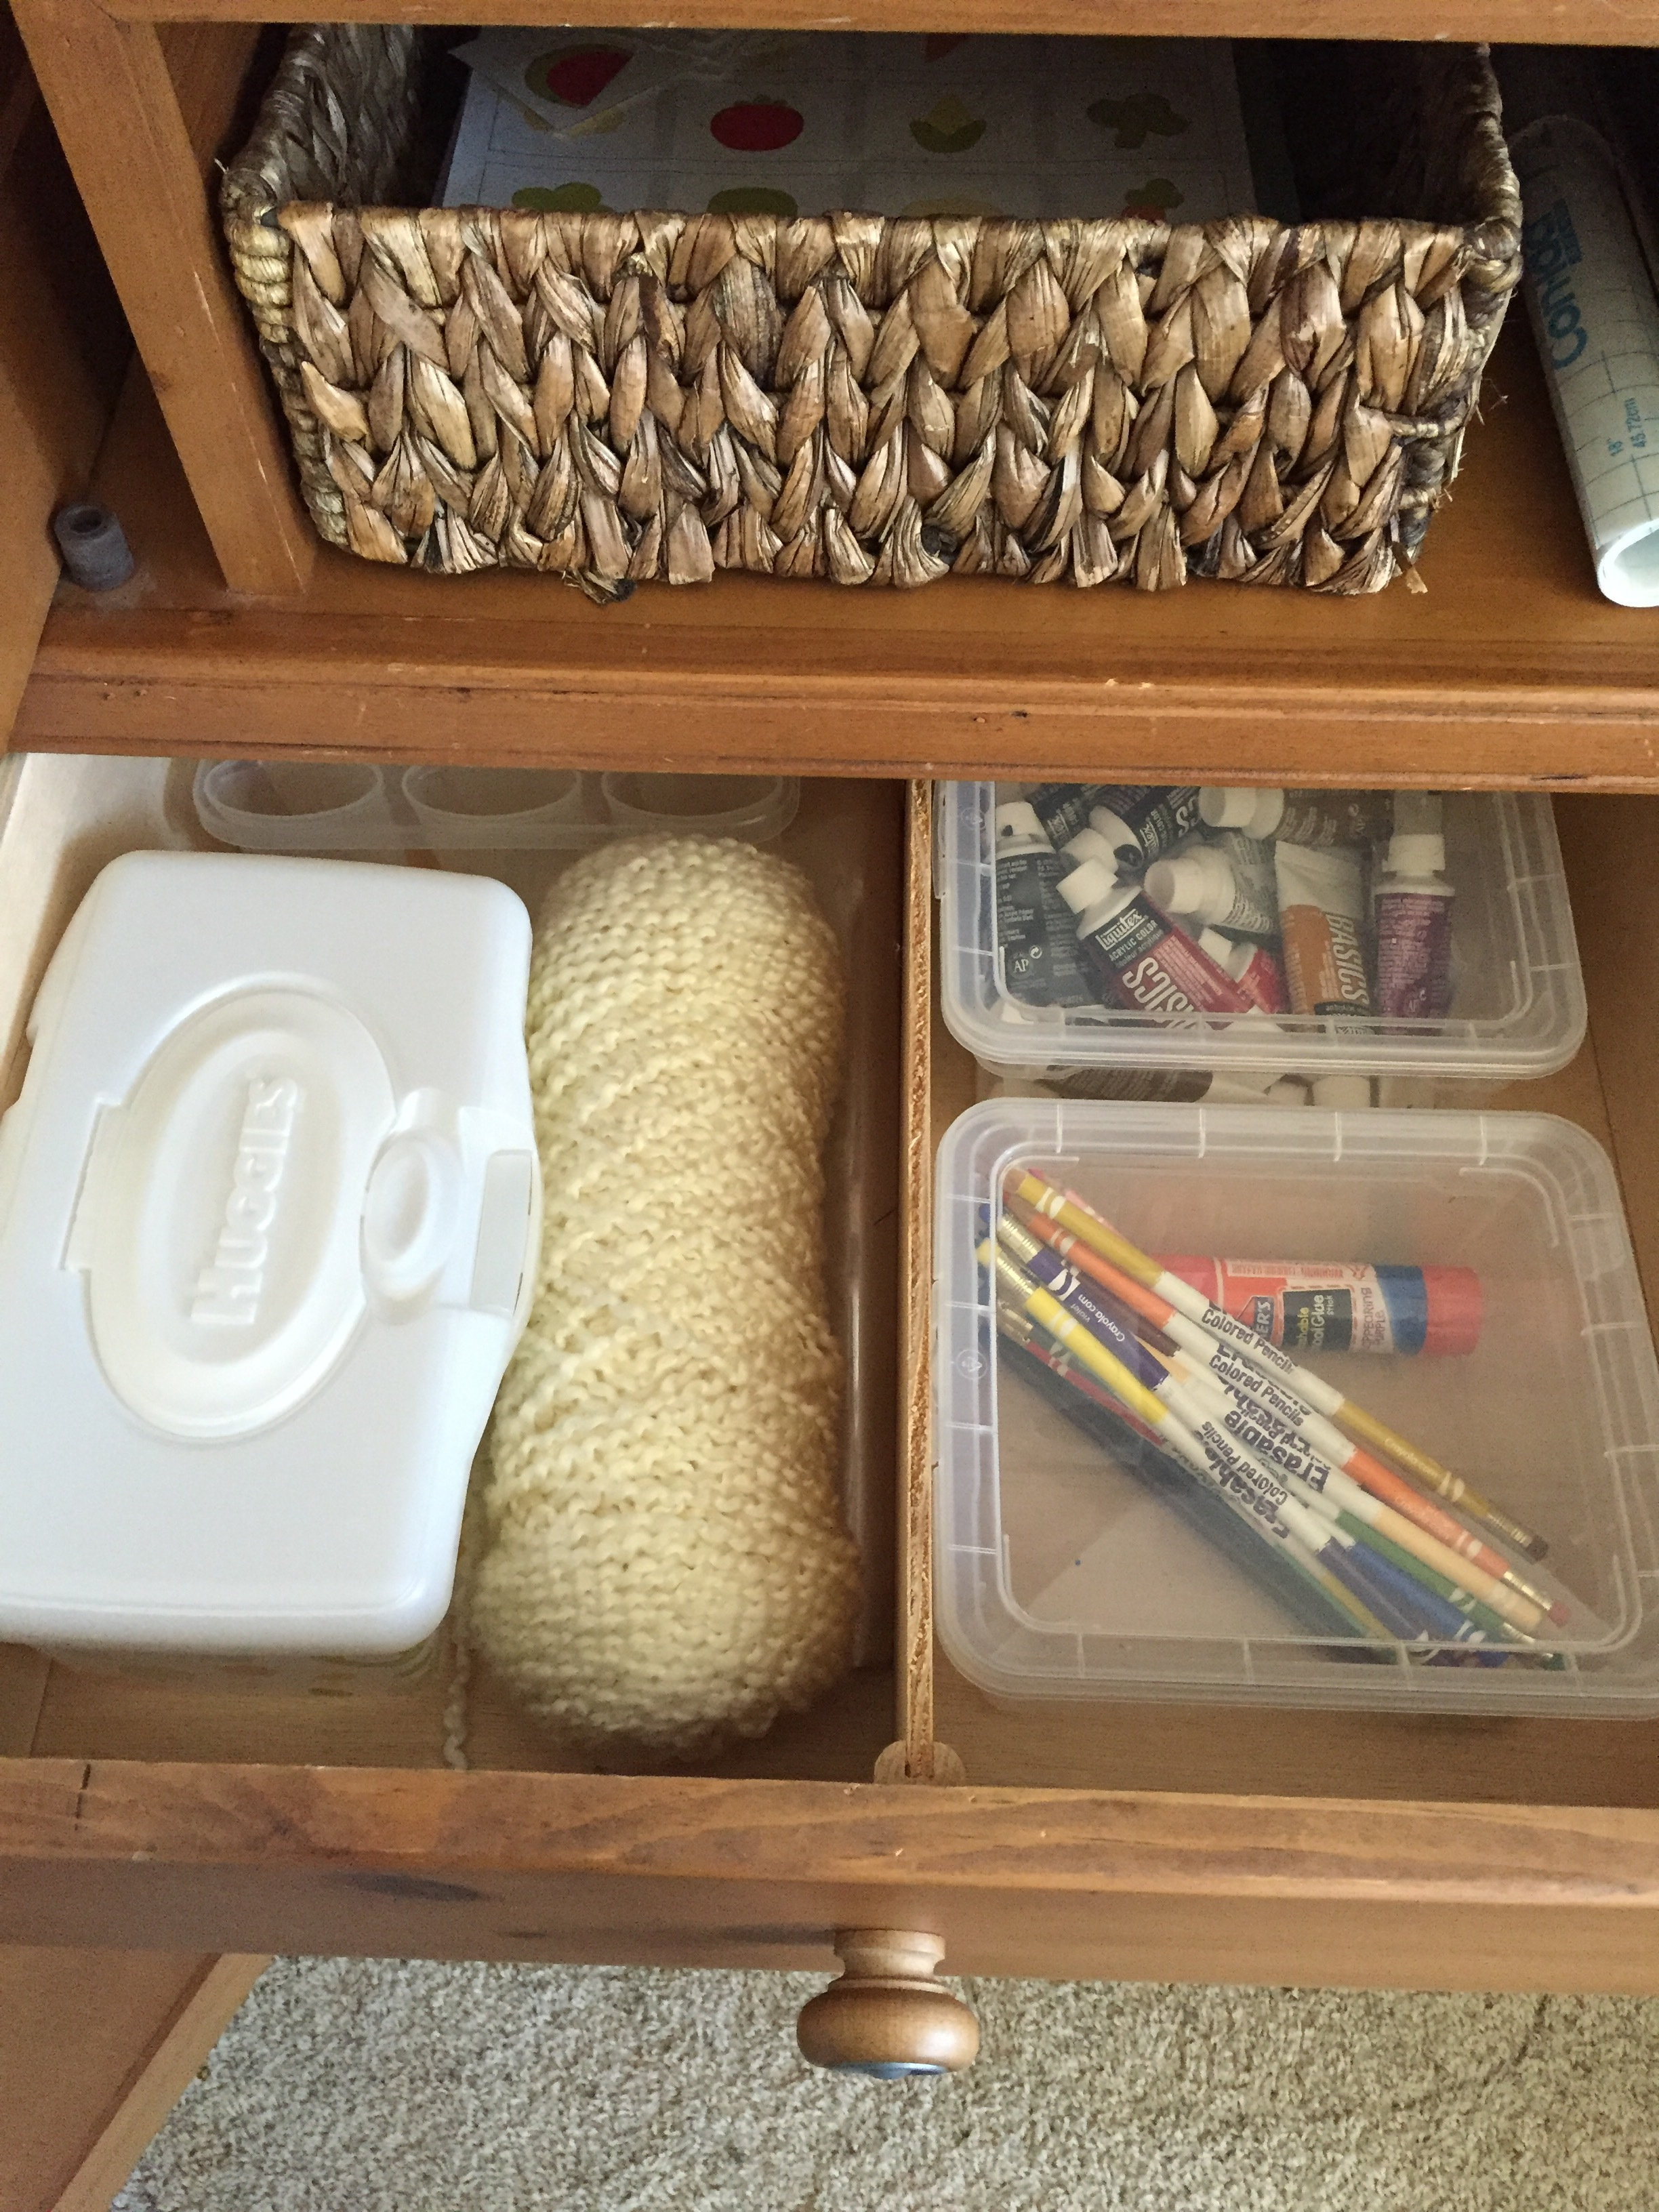 extra storage in the drawers!